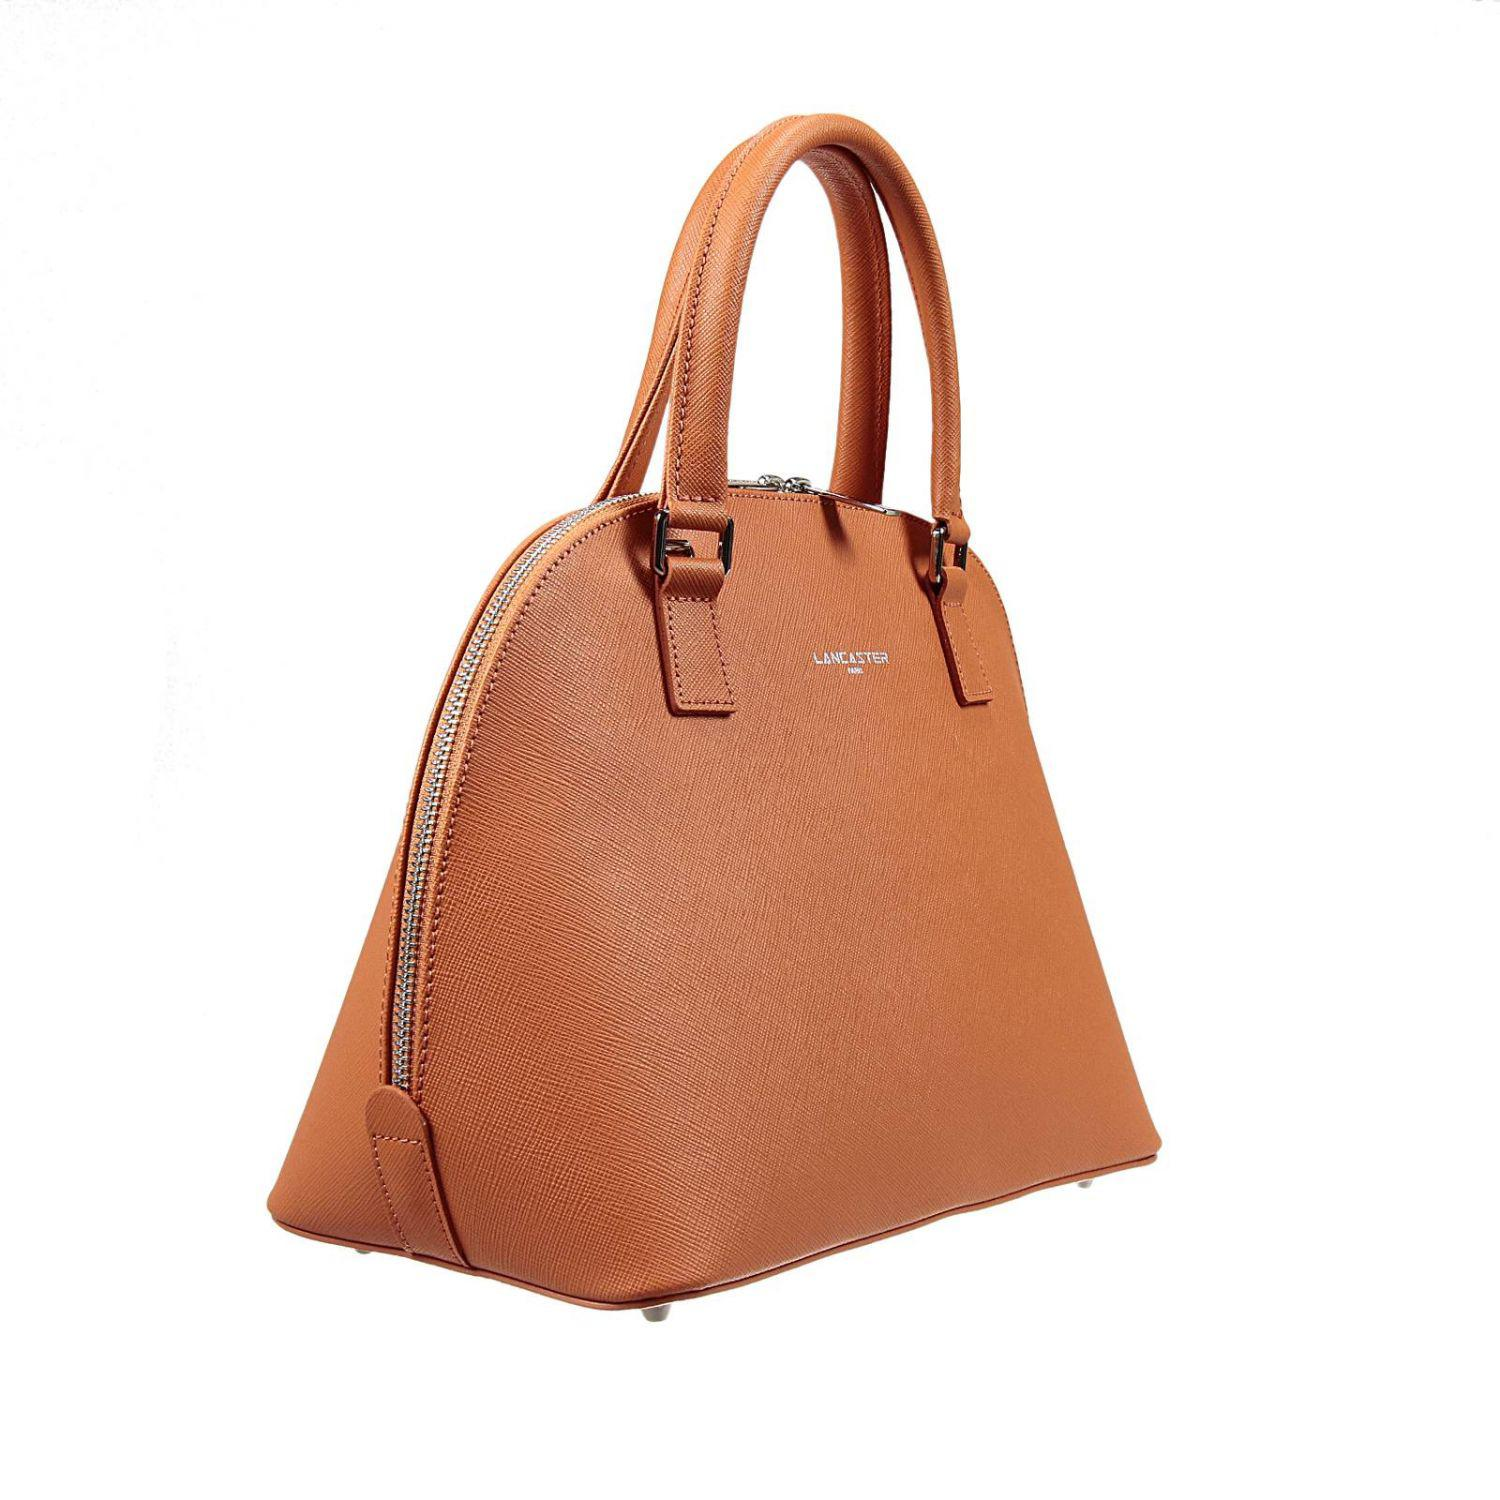 Lancaster Leather Tote Bags in Orange